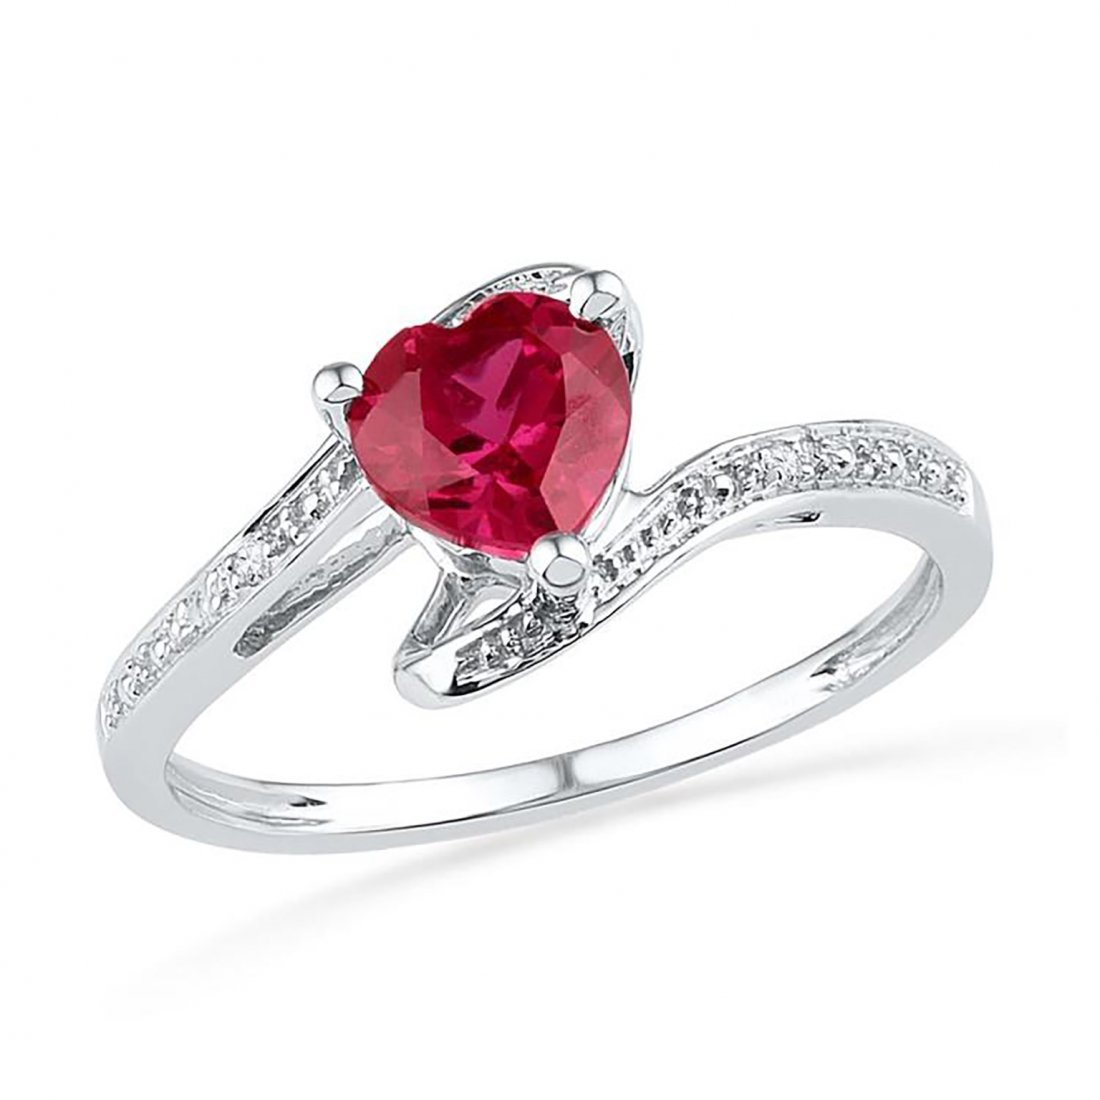 Heart Shaped Ruby Ring with Diamond Accents